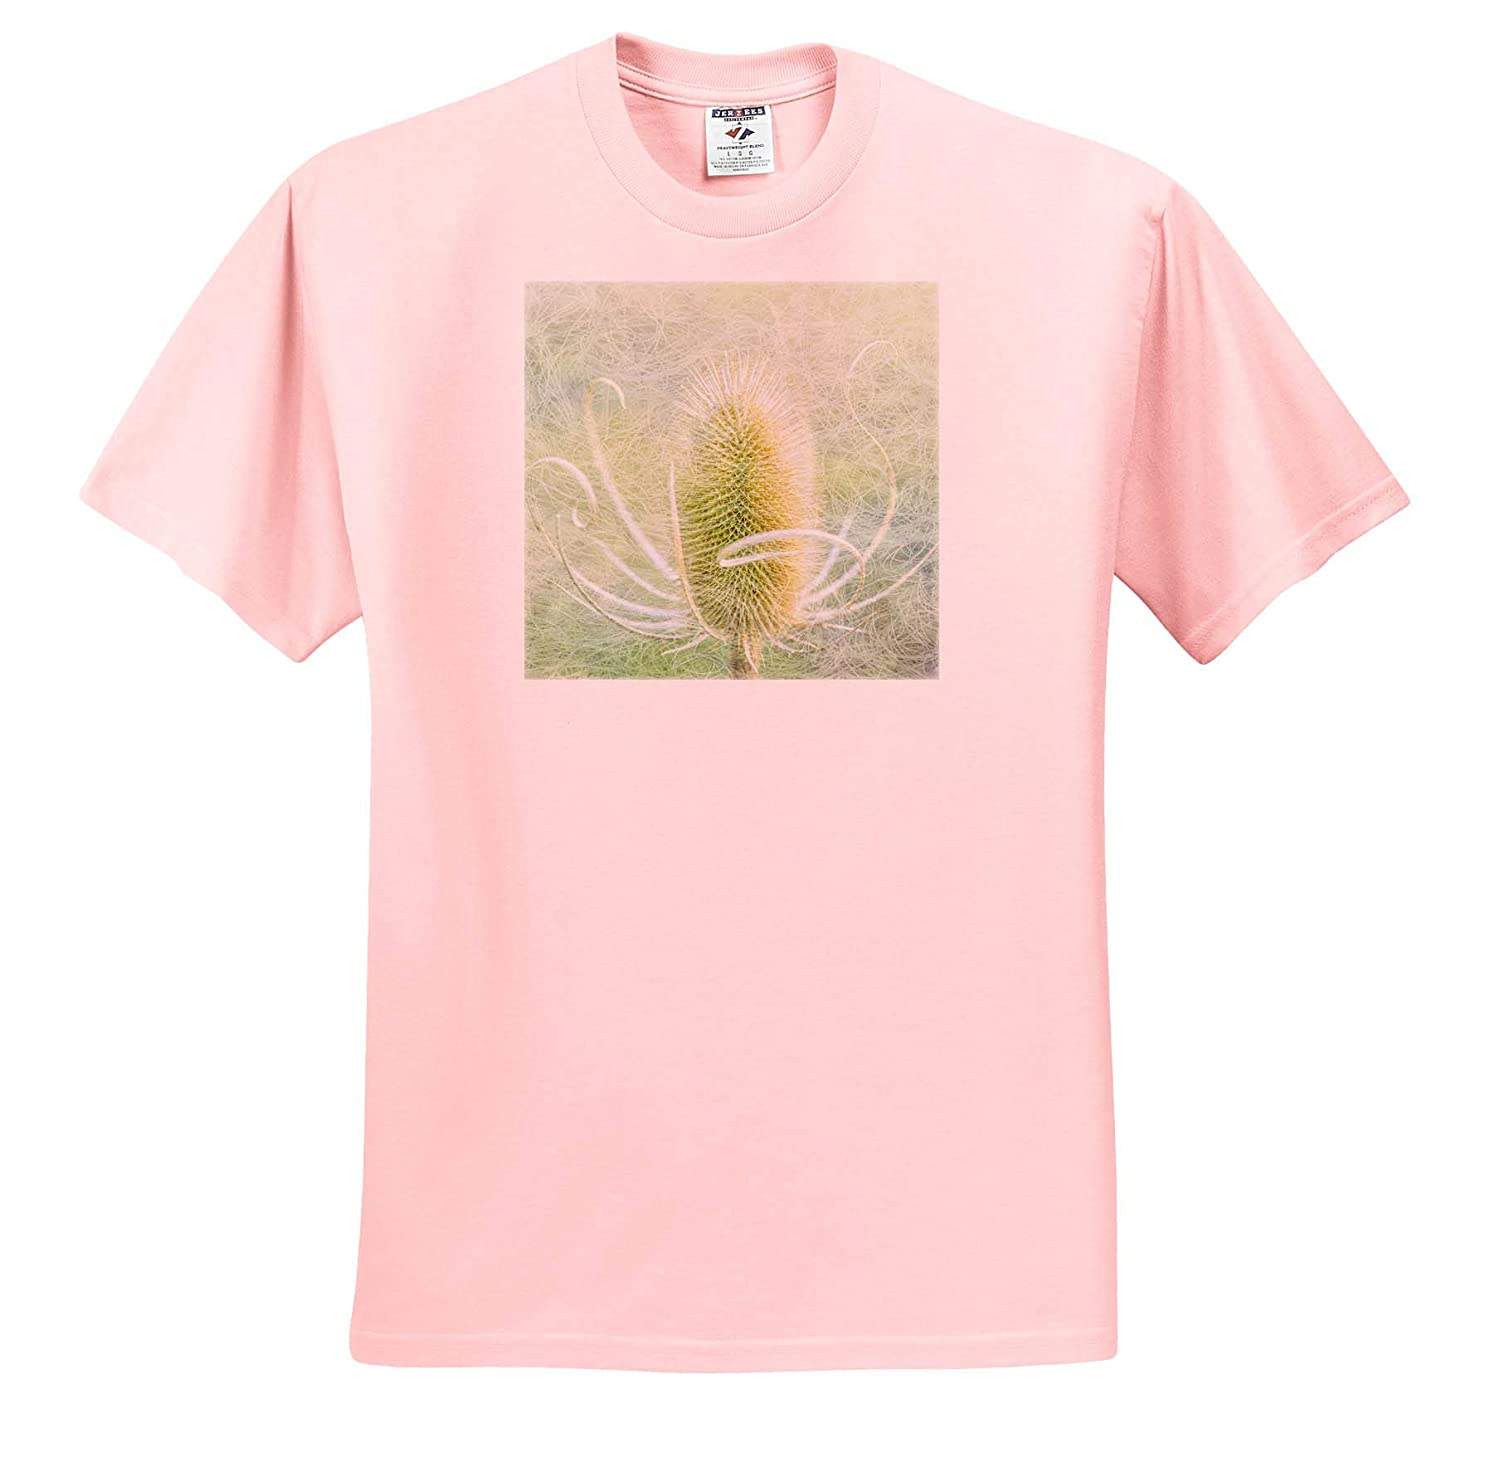 3dRose Danita Delimont Natural Patterns Abstract of Teasel Plant - Adult T-Shirt XL ts/_314976